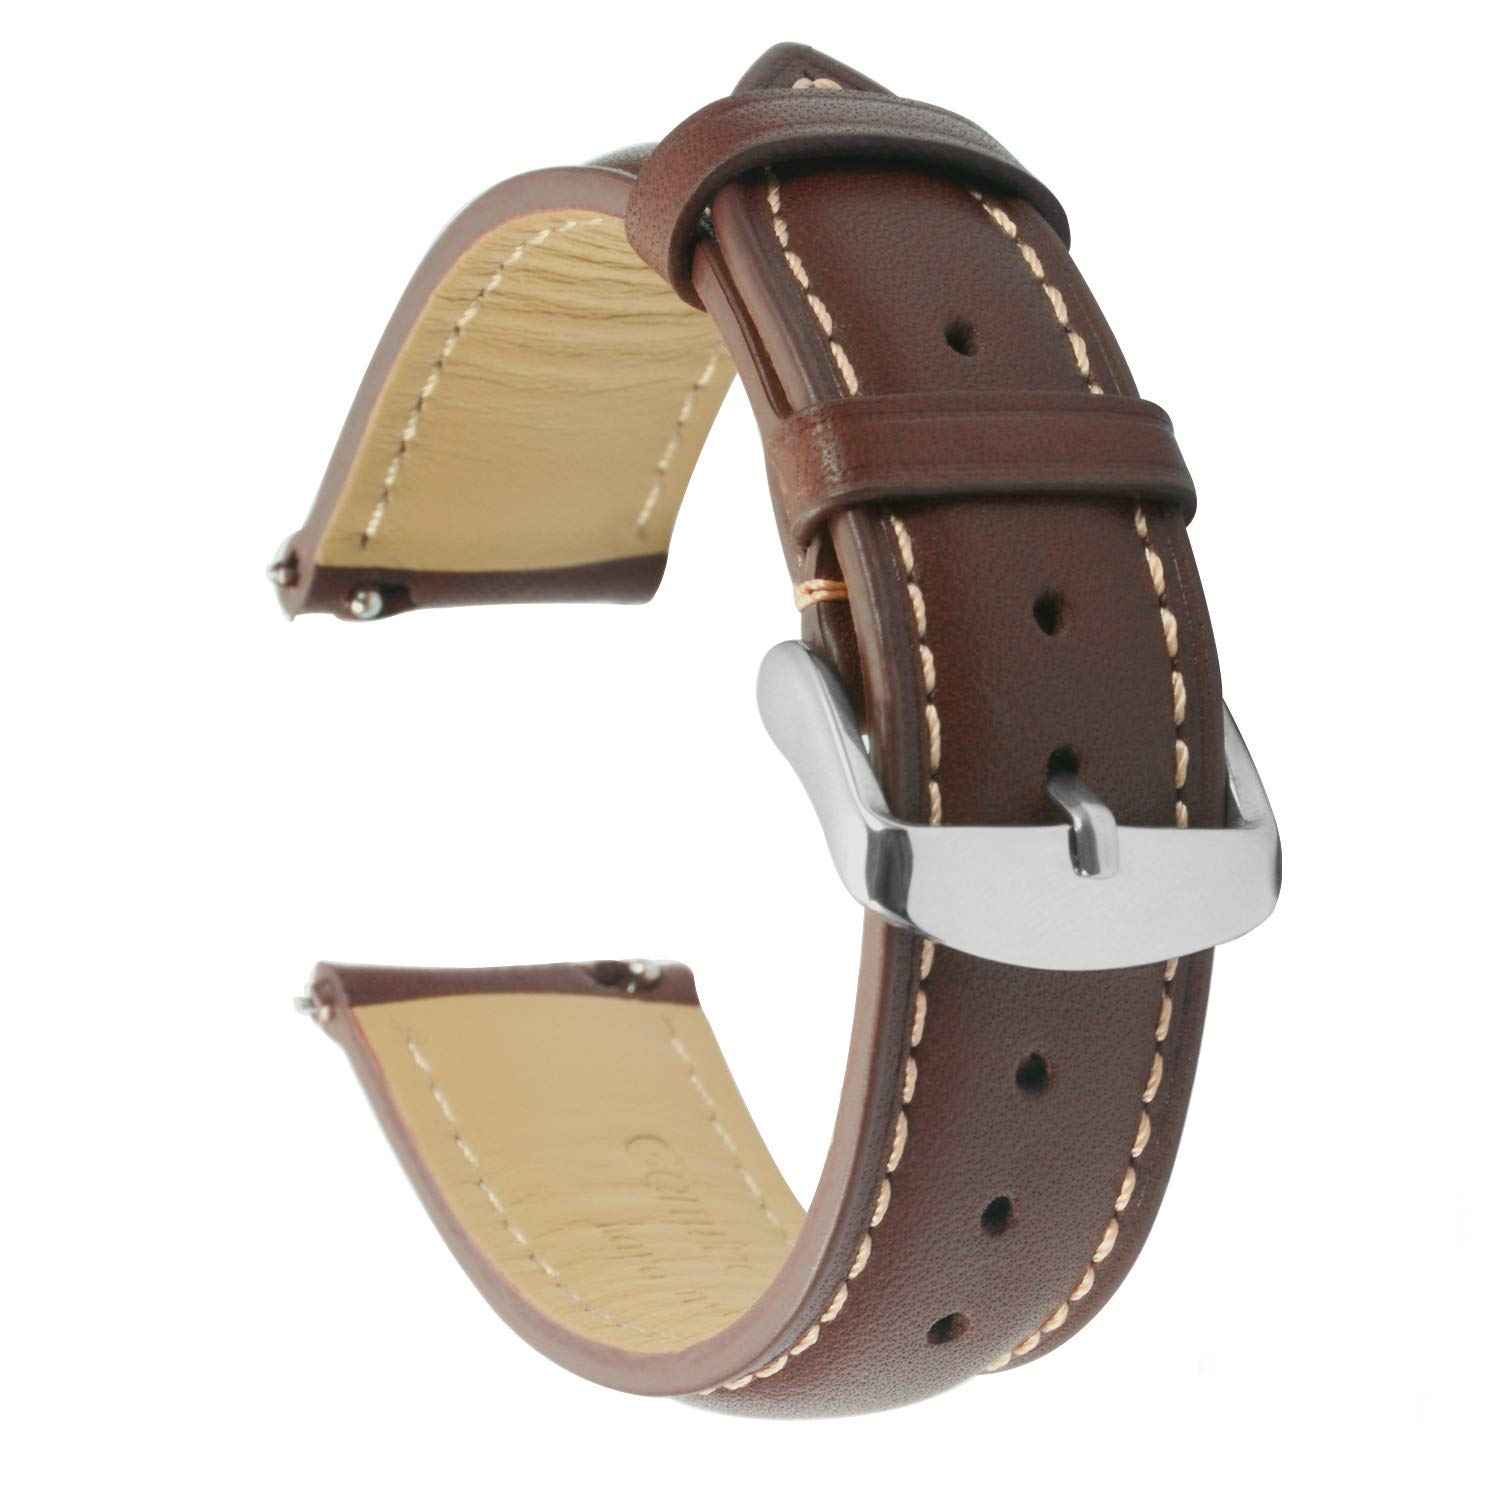 TStrap Watch Bands - Leather Watch Straps - Quick Release - Choose Color & Width - 18mm 19mm 20mm 22mm